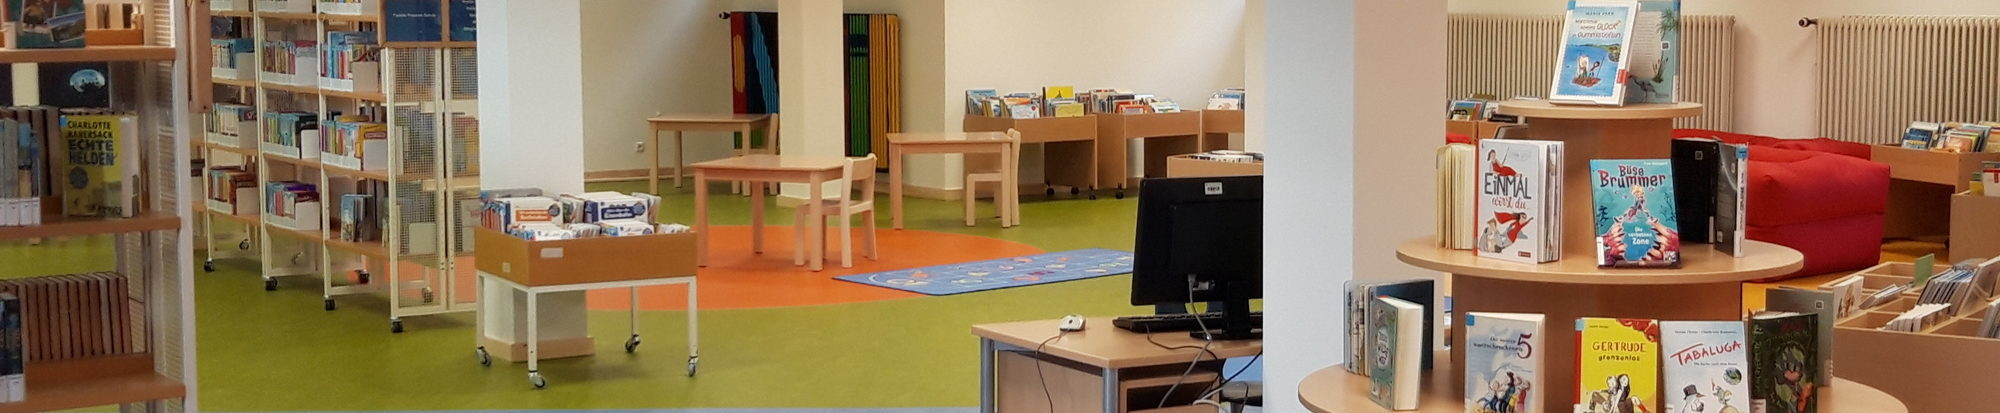 Kinderbibliothek in Lebenstedt